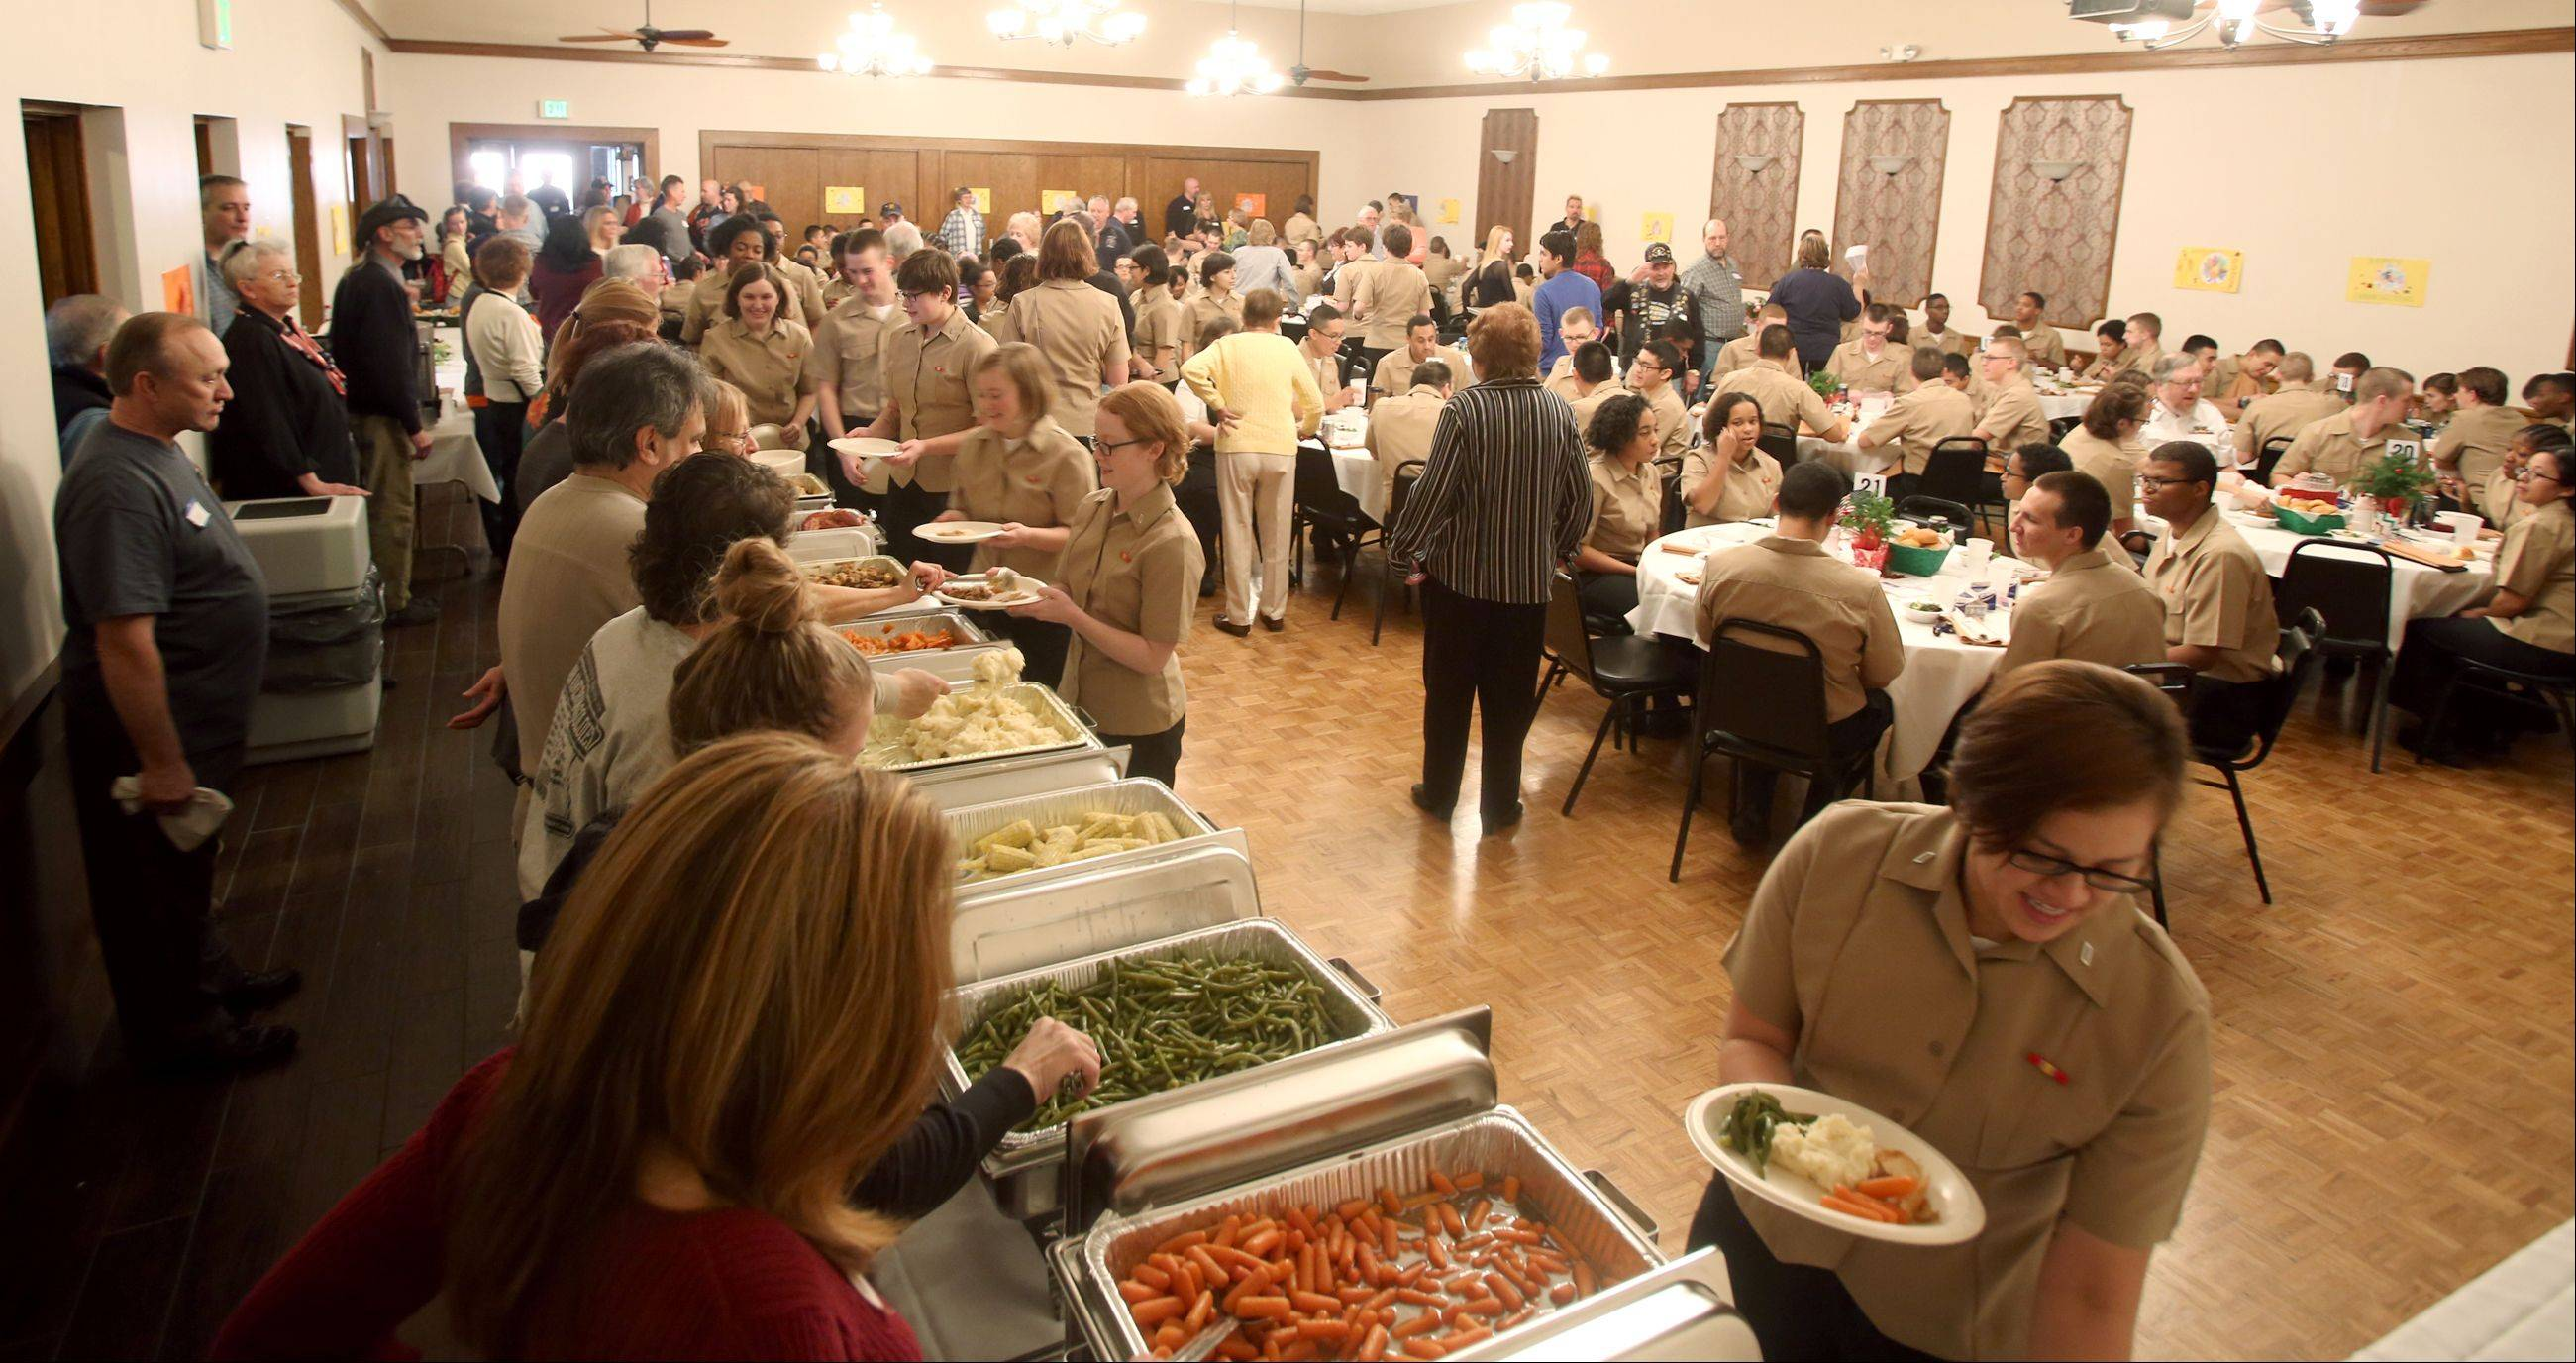 The Villa Park VFW Post 2801 hosted Thanksgiving for 165 recruits from the Great Lakes Naval Station.